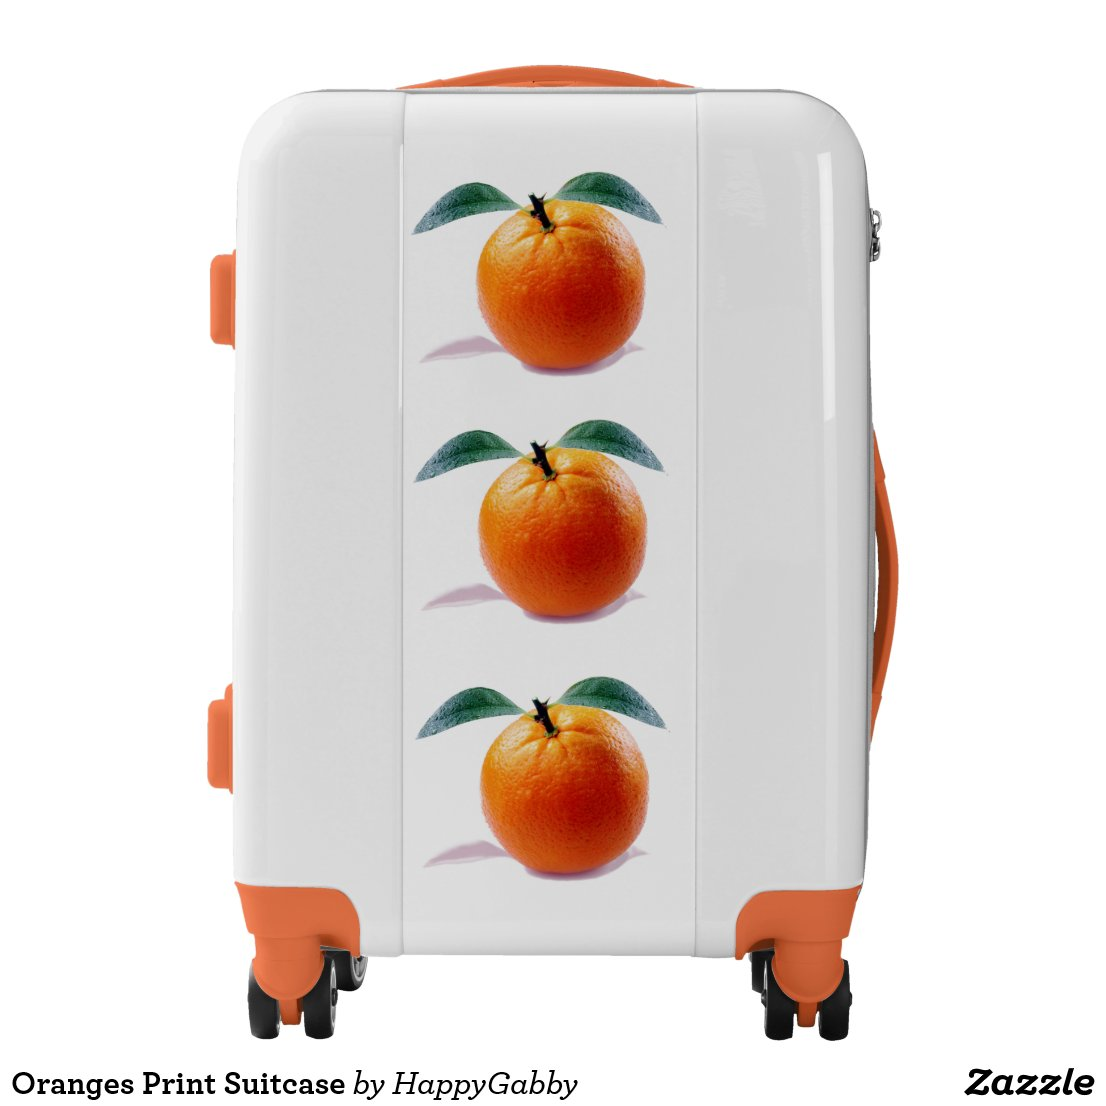 Oranges Print Suitcase Luggage